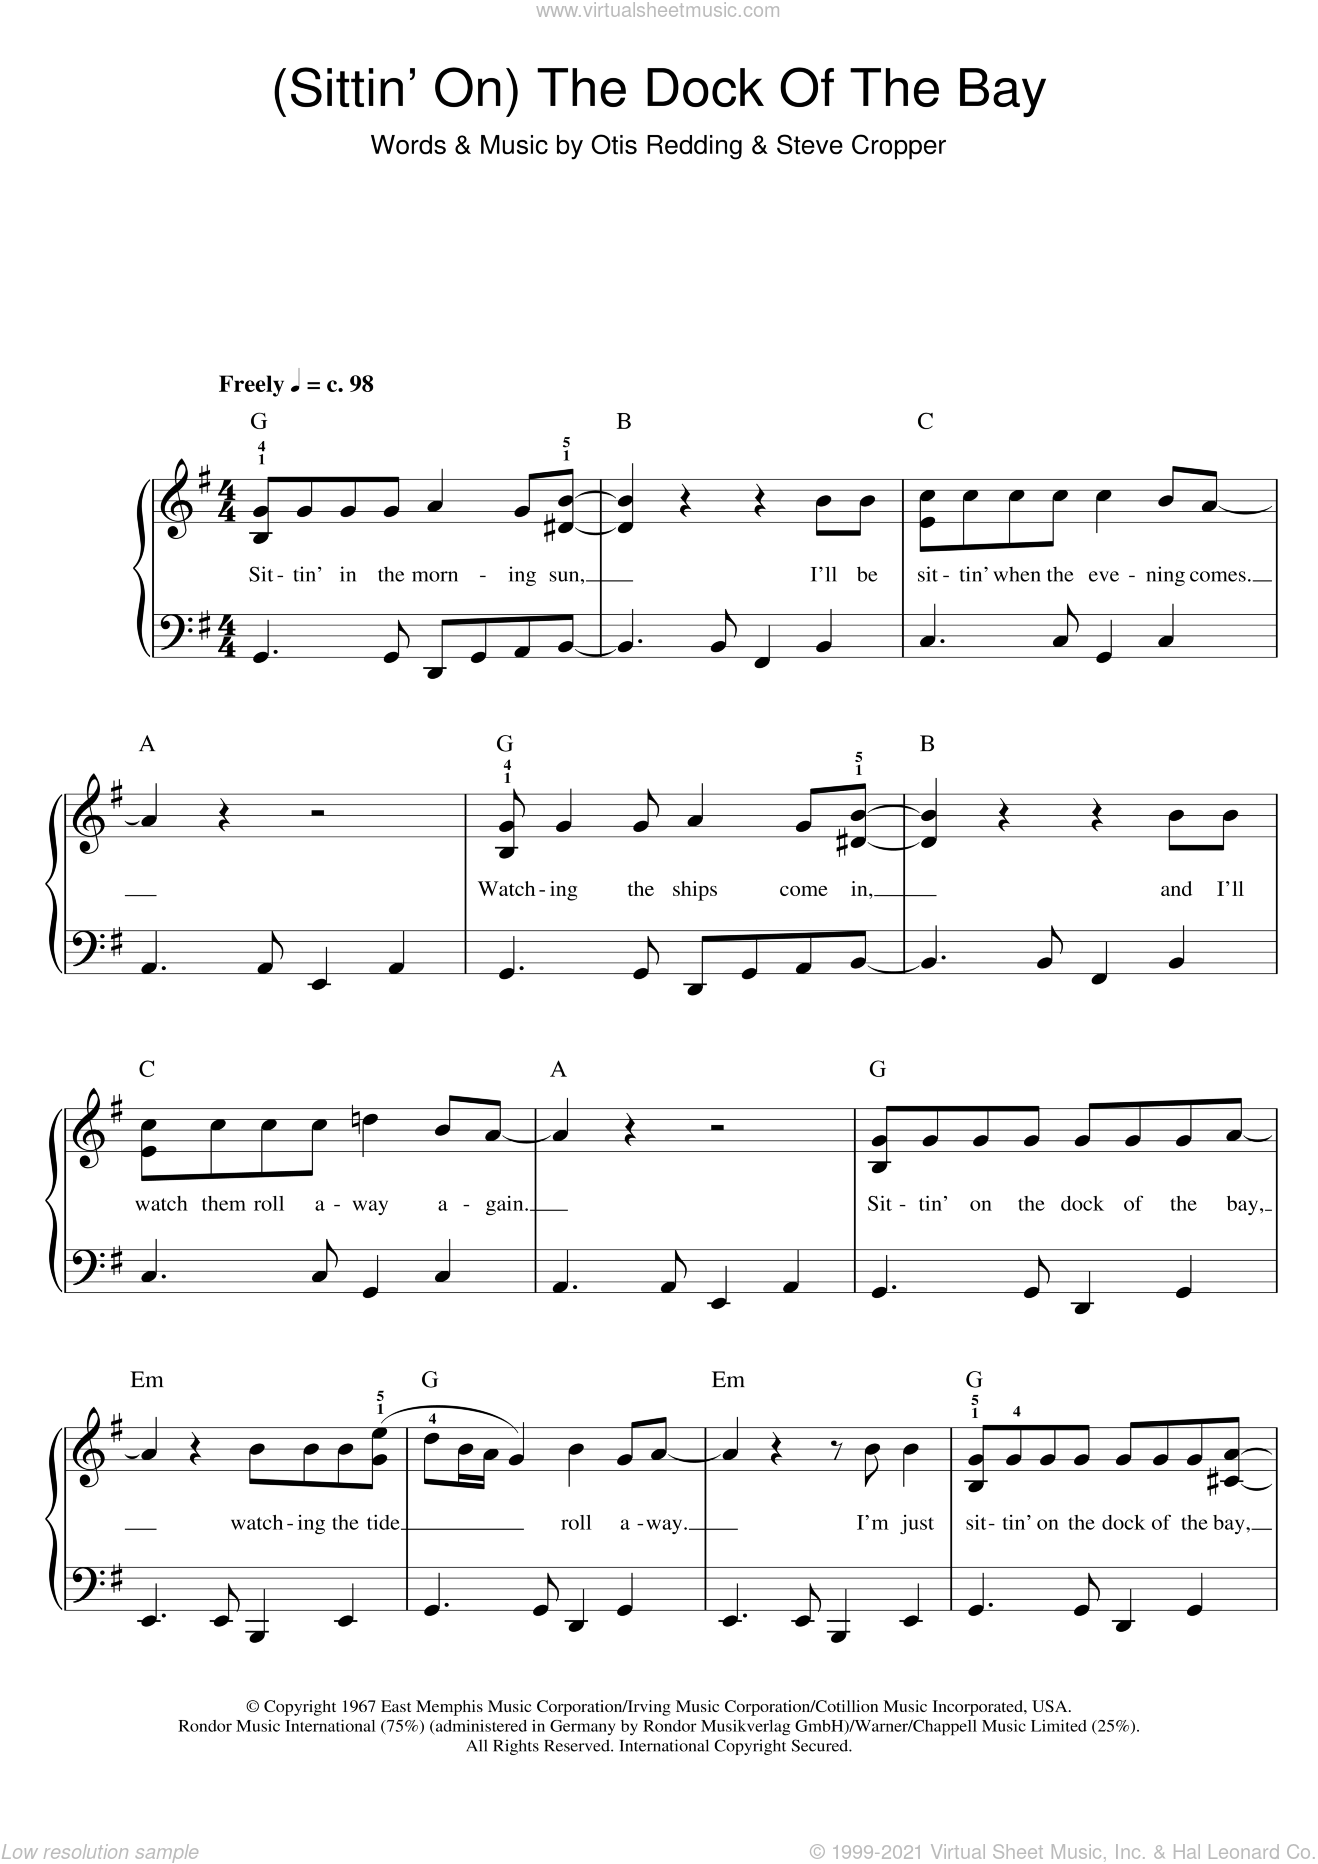 (Sittin' On) The Dock Of The Bay sheet music for piano solo by Otis Redding and Steve Cropper, easy skill level